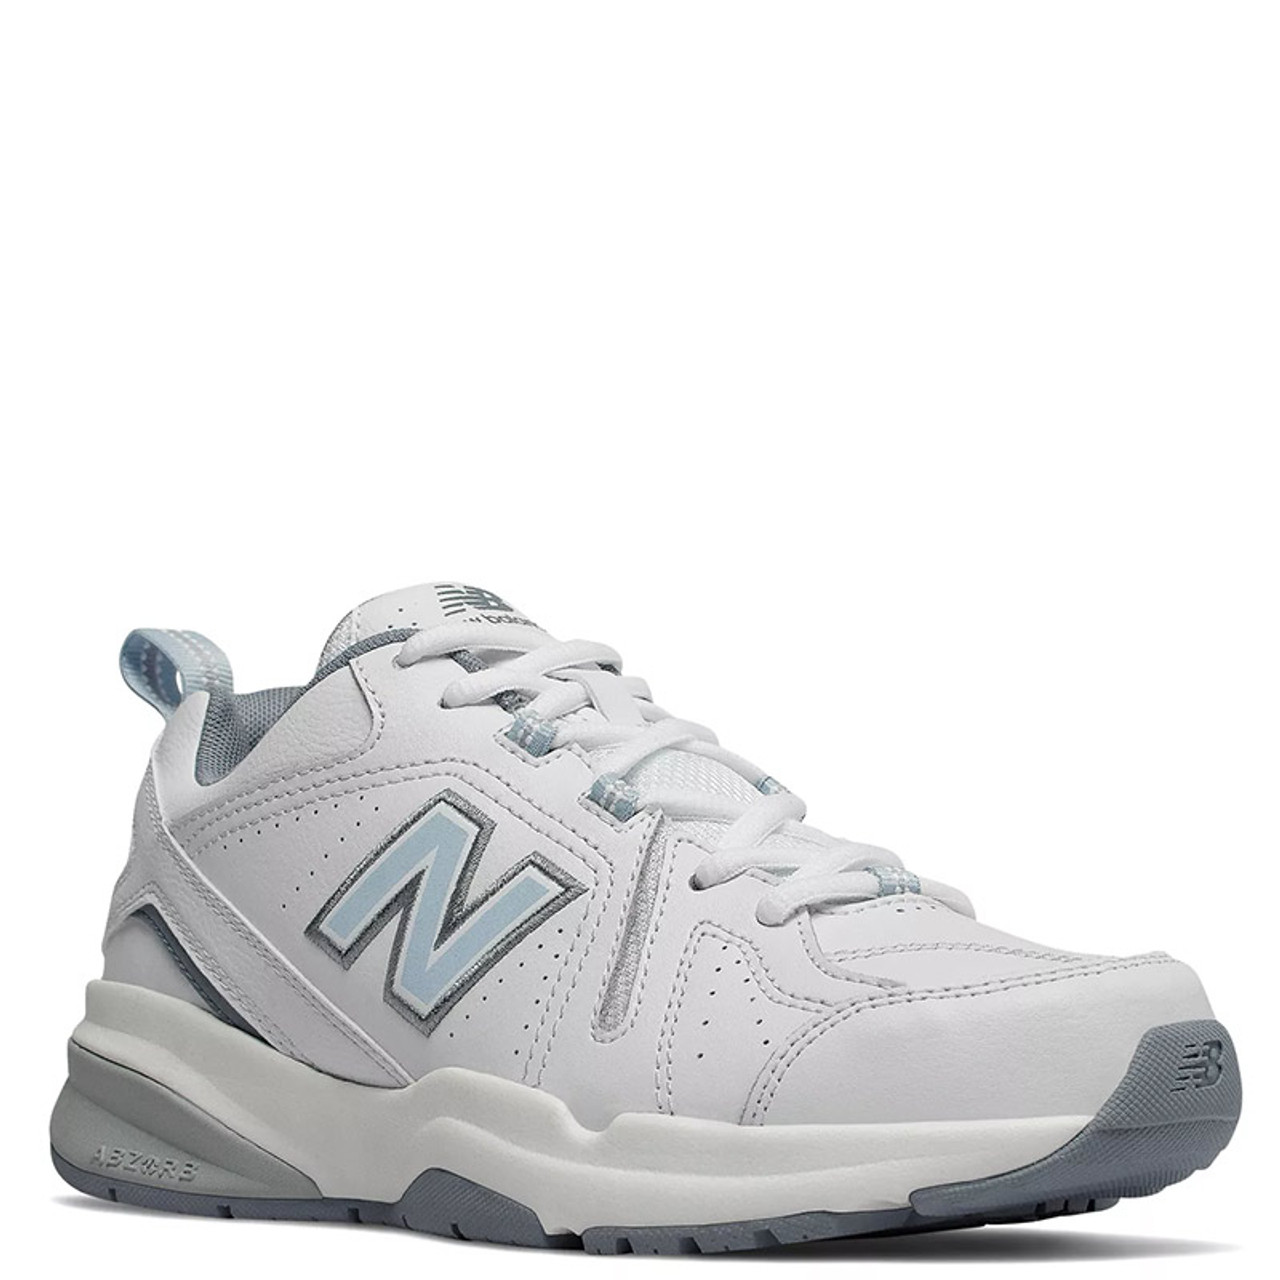 5fc10b01c1 New Balance 608v5 Women's Classic White Leather Trainers with Light Blue